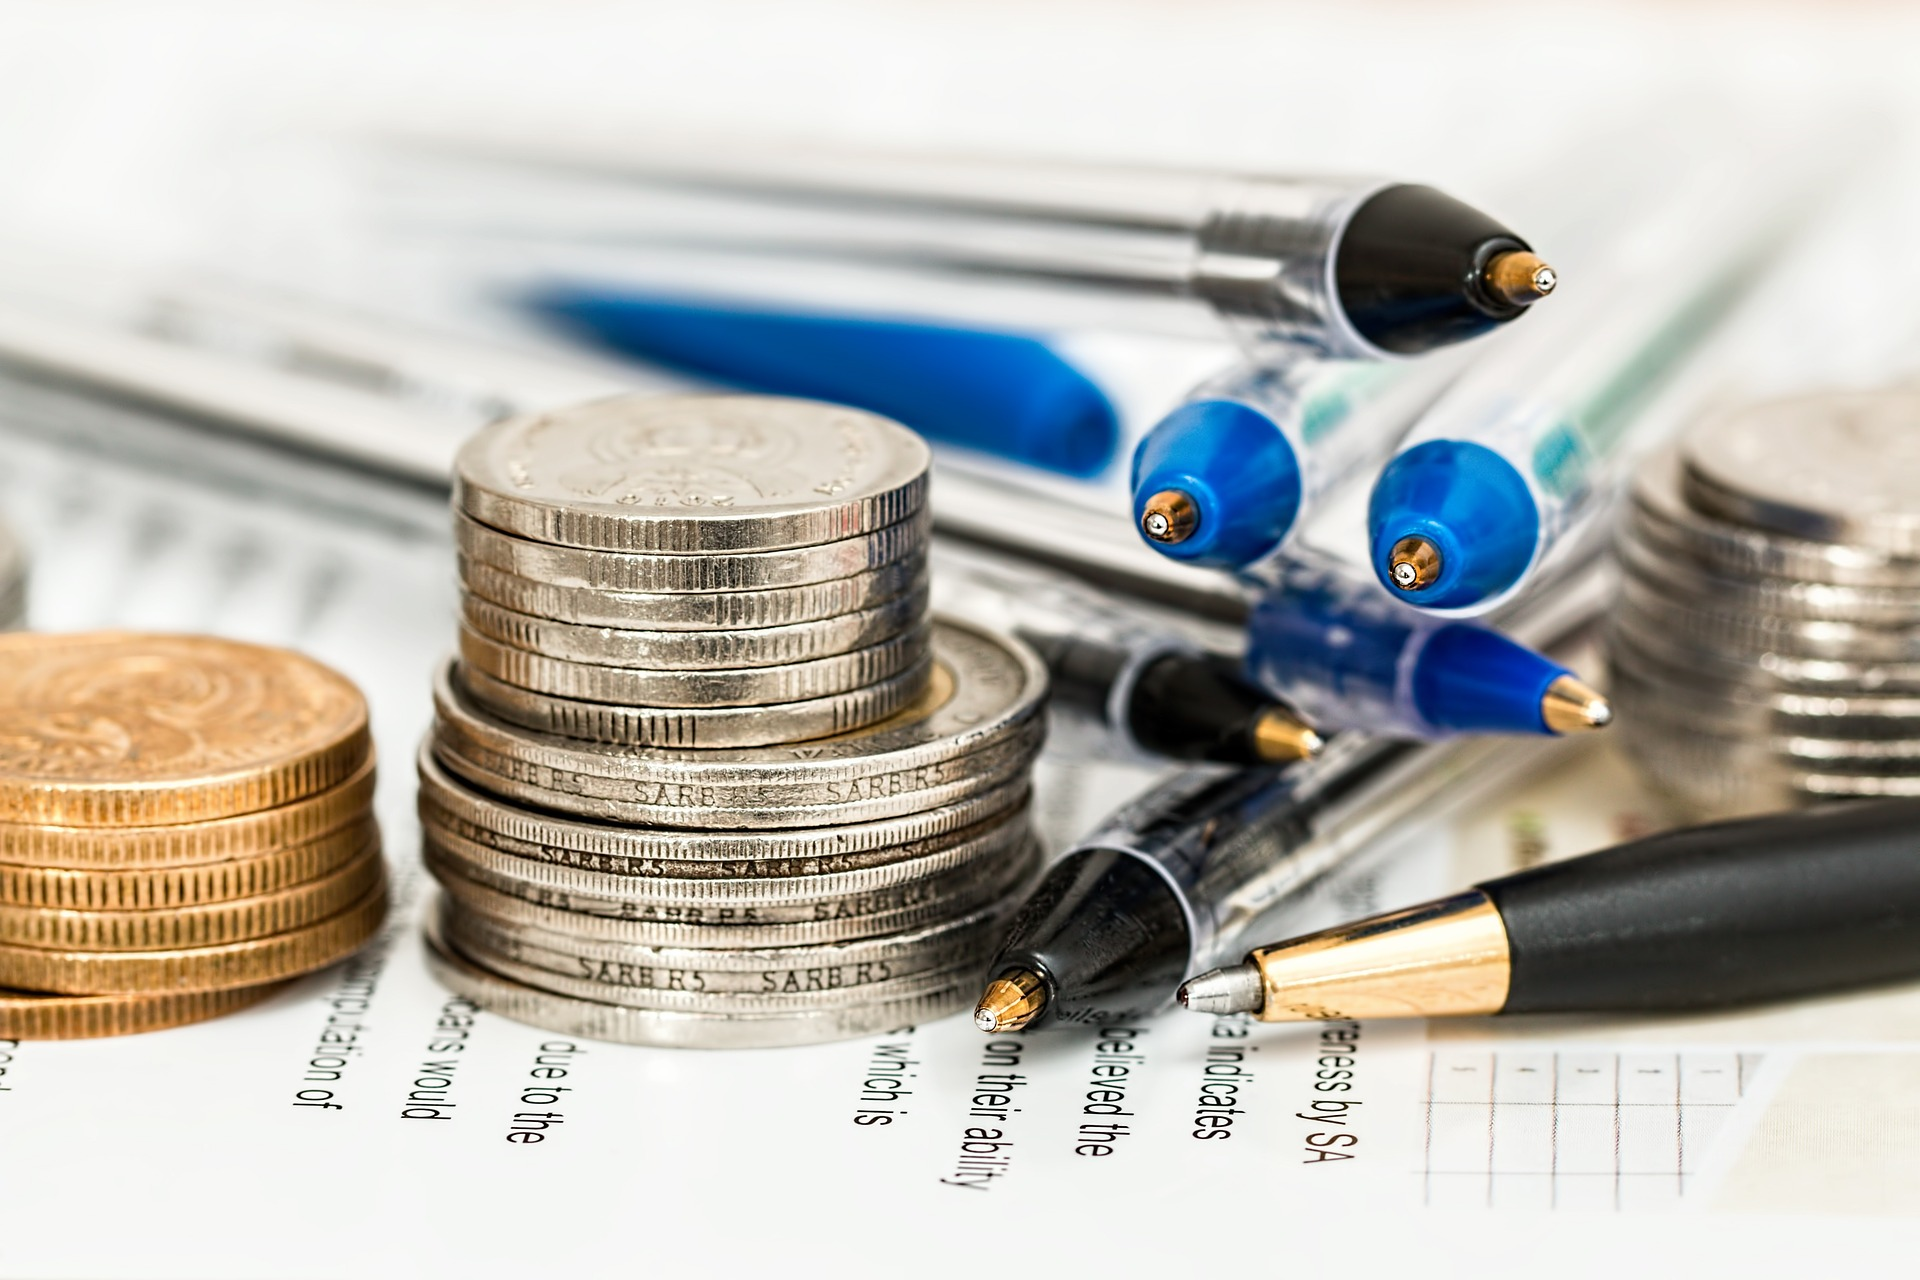 Taking stock of Finances - Pens and coins on a paper